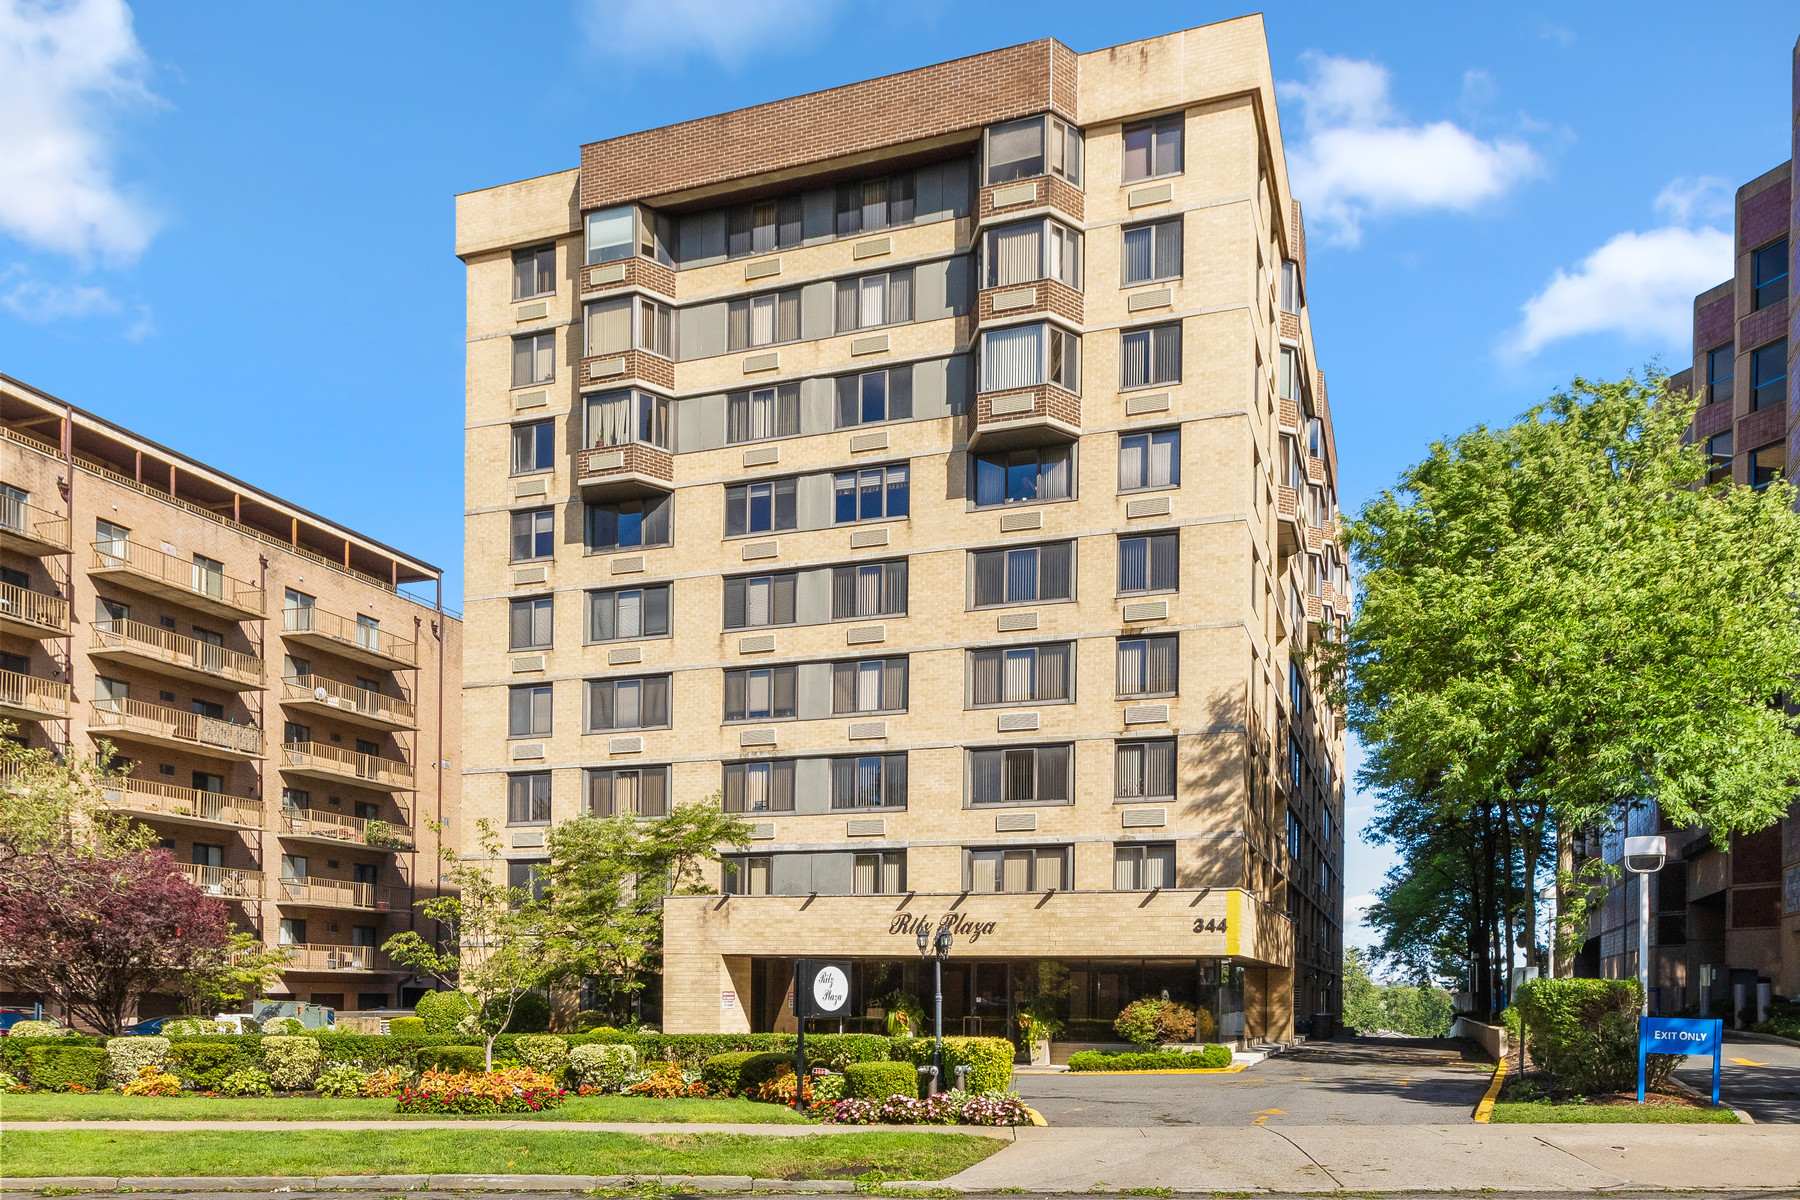 Condominiums for Active at Ritz Plaza 344 Prospect Ave PHC Hackensack, New Jersey 07601 United States